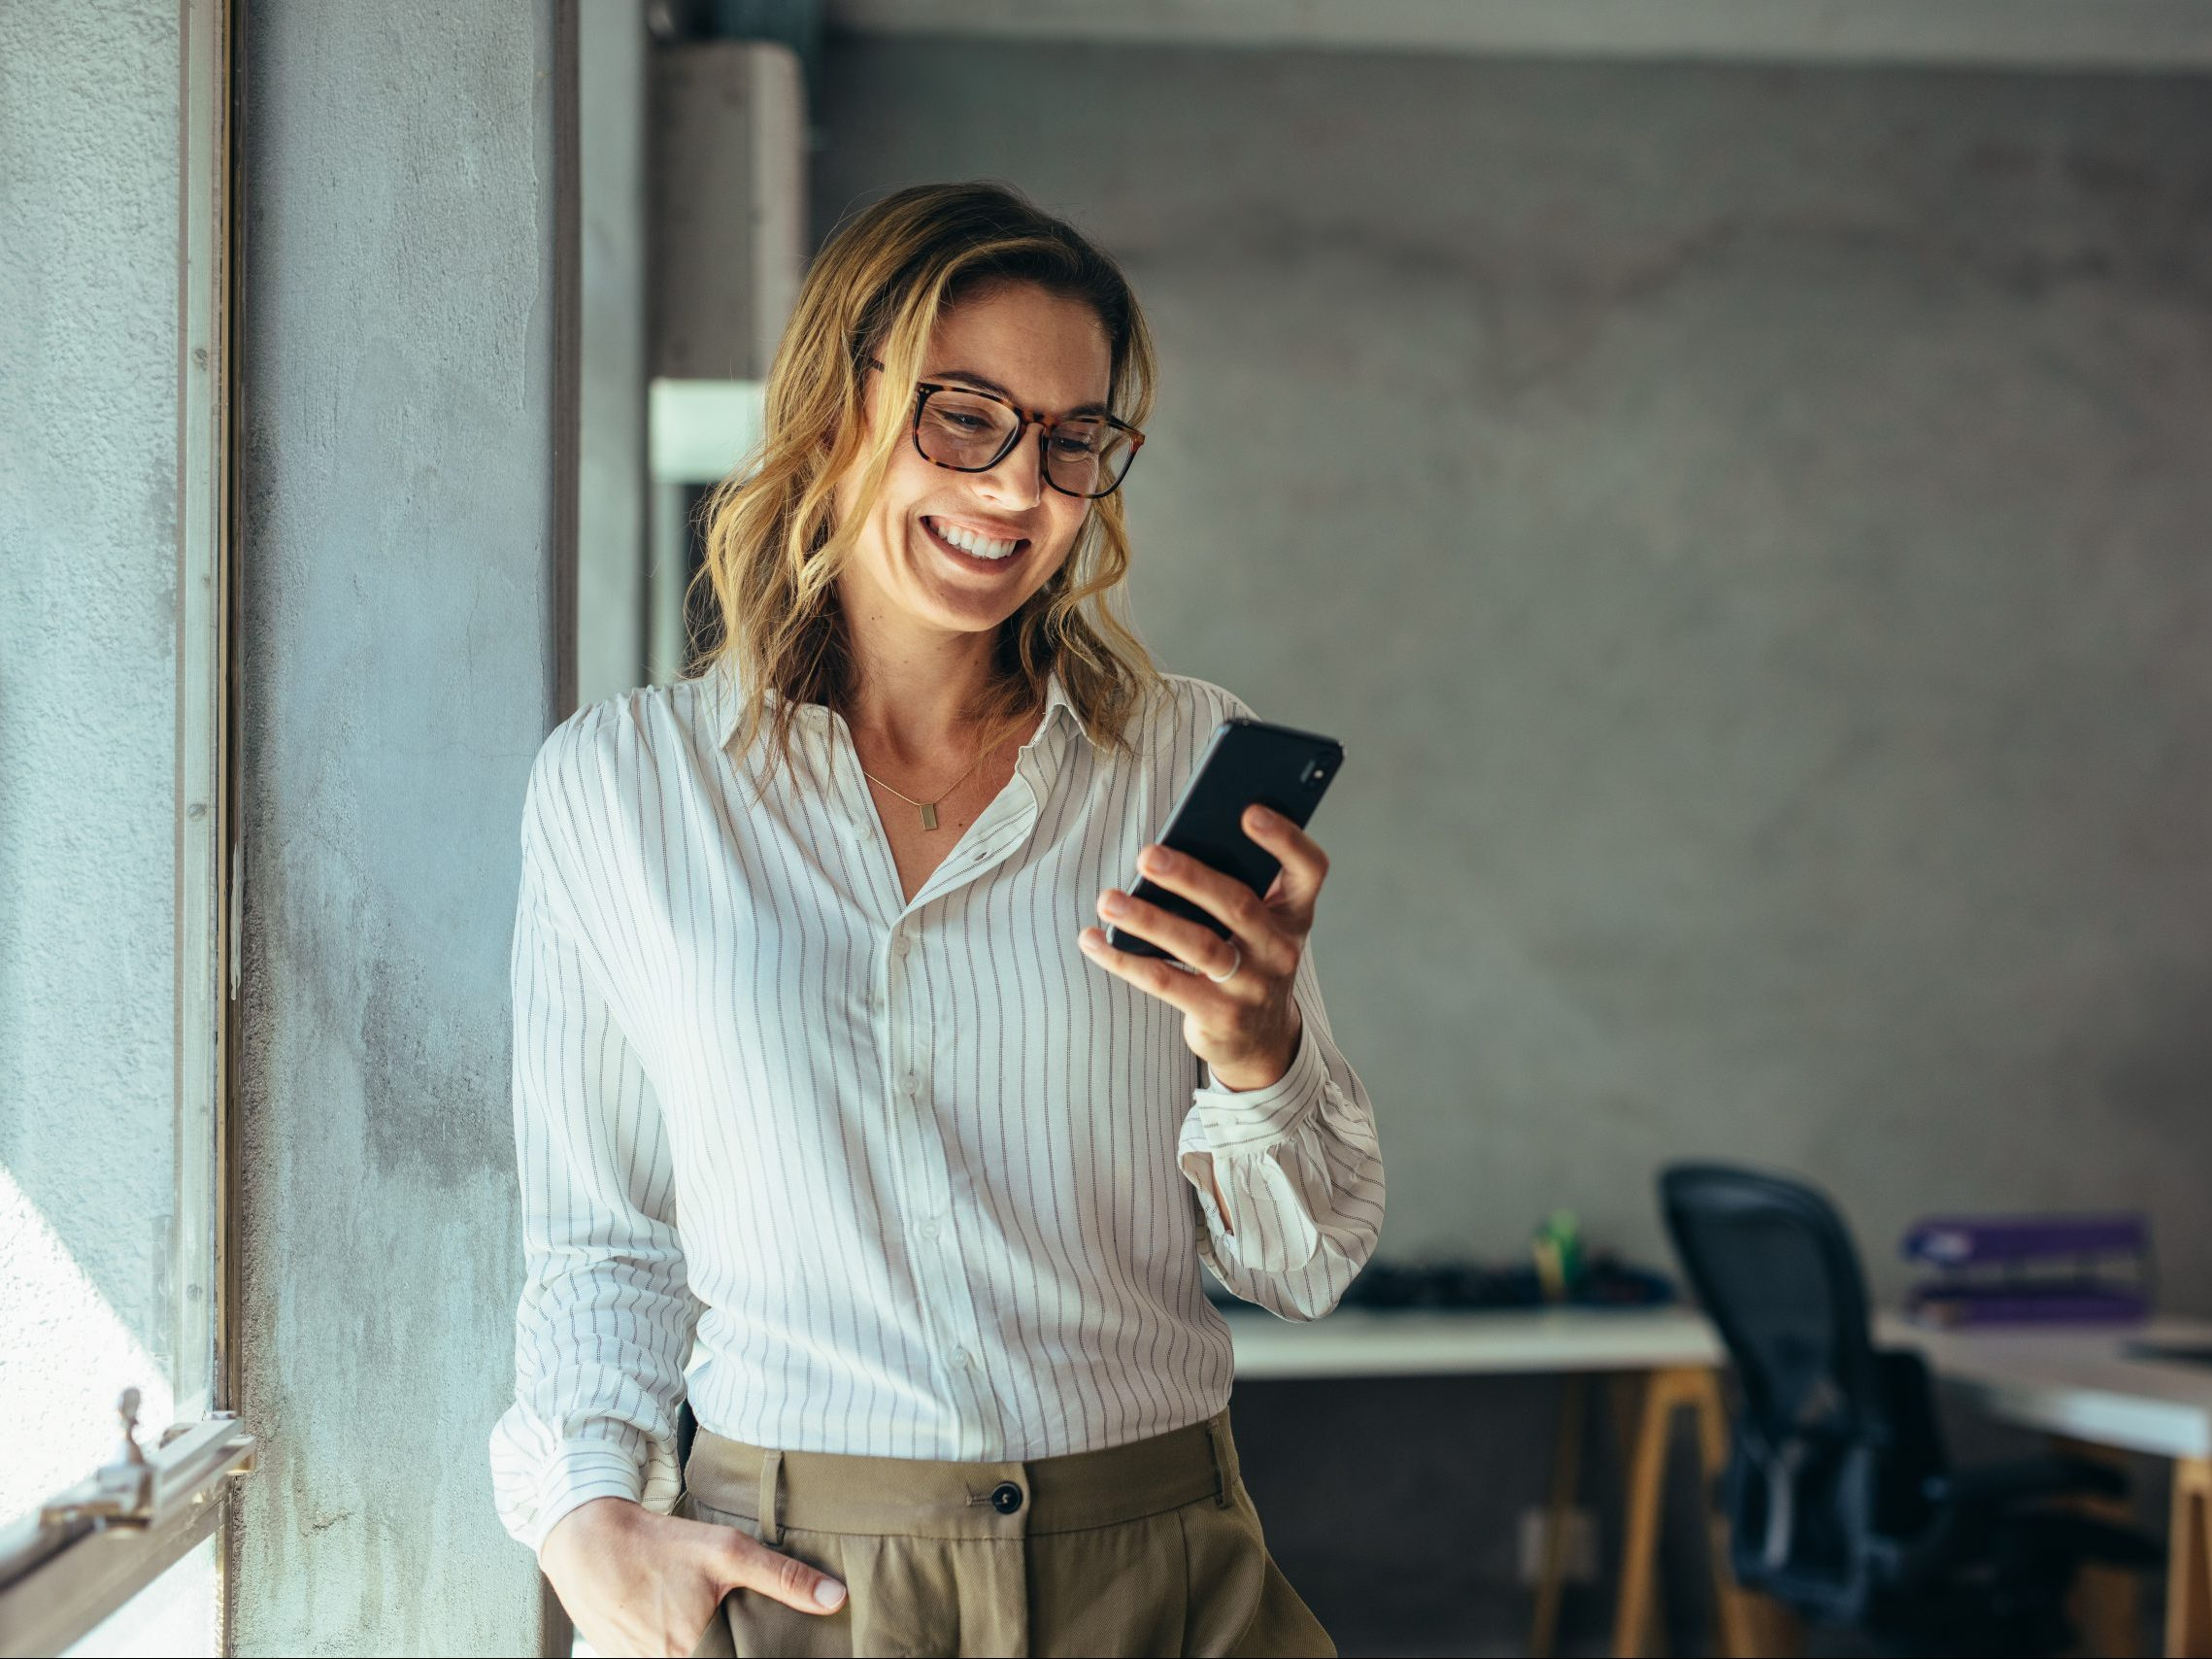 Smiling,Businesswoman,Using,Phone,In,Office.,Small,Business,Entrepreneur,Looking